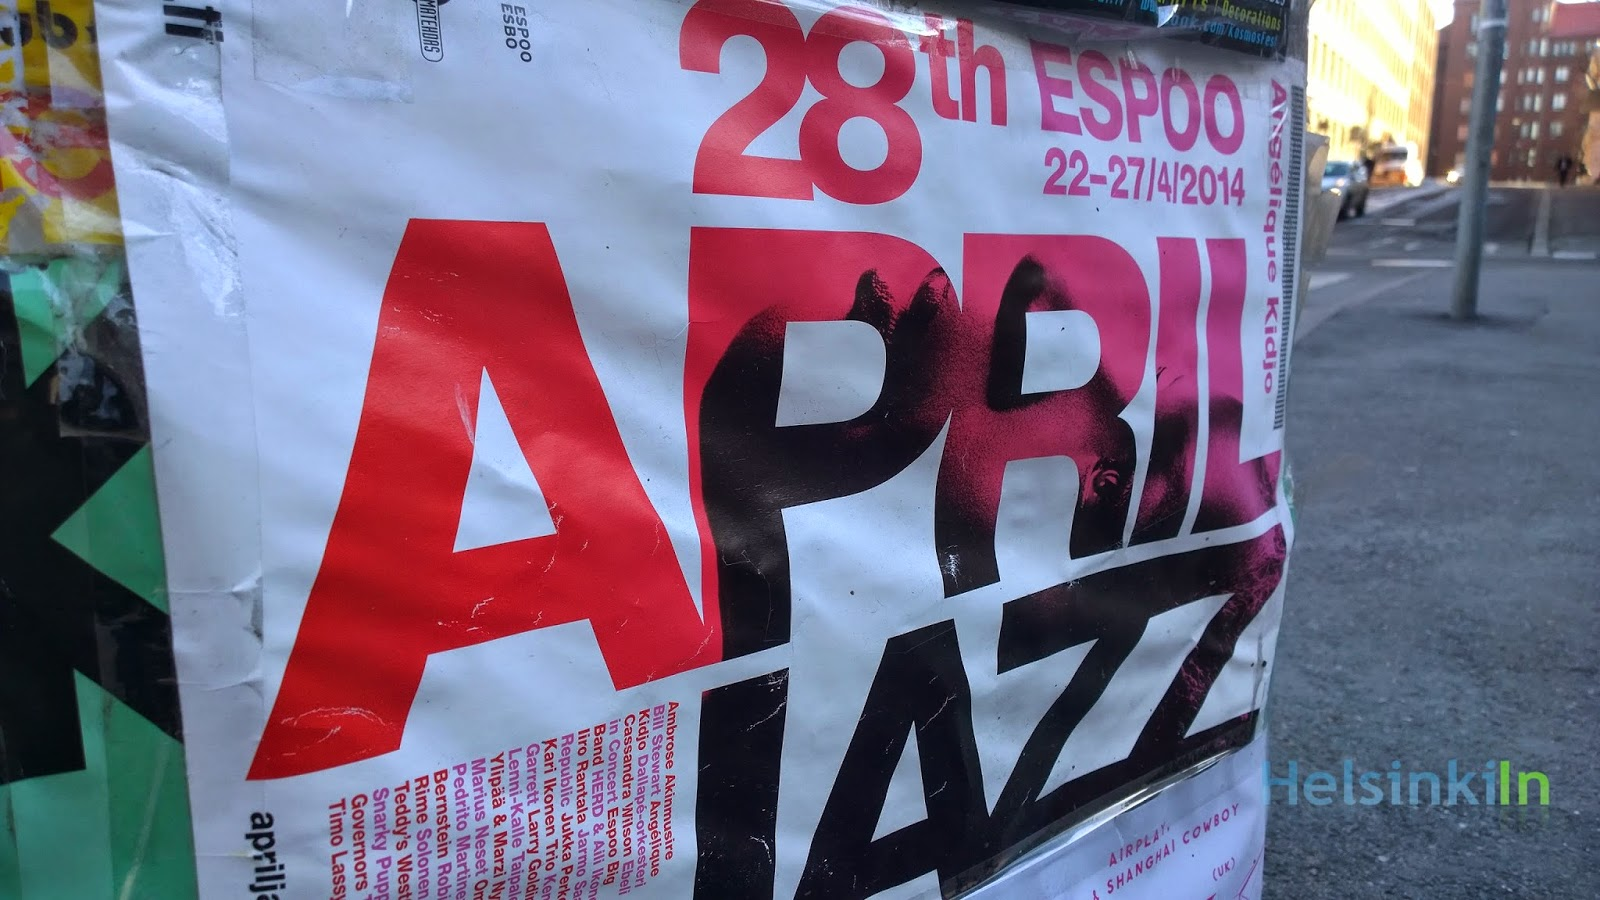 April Jazz in Espoo